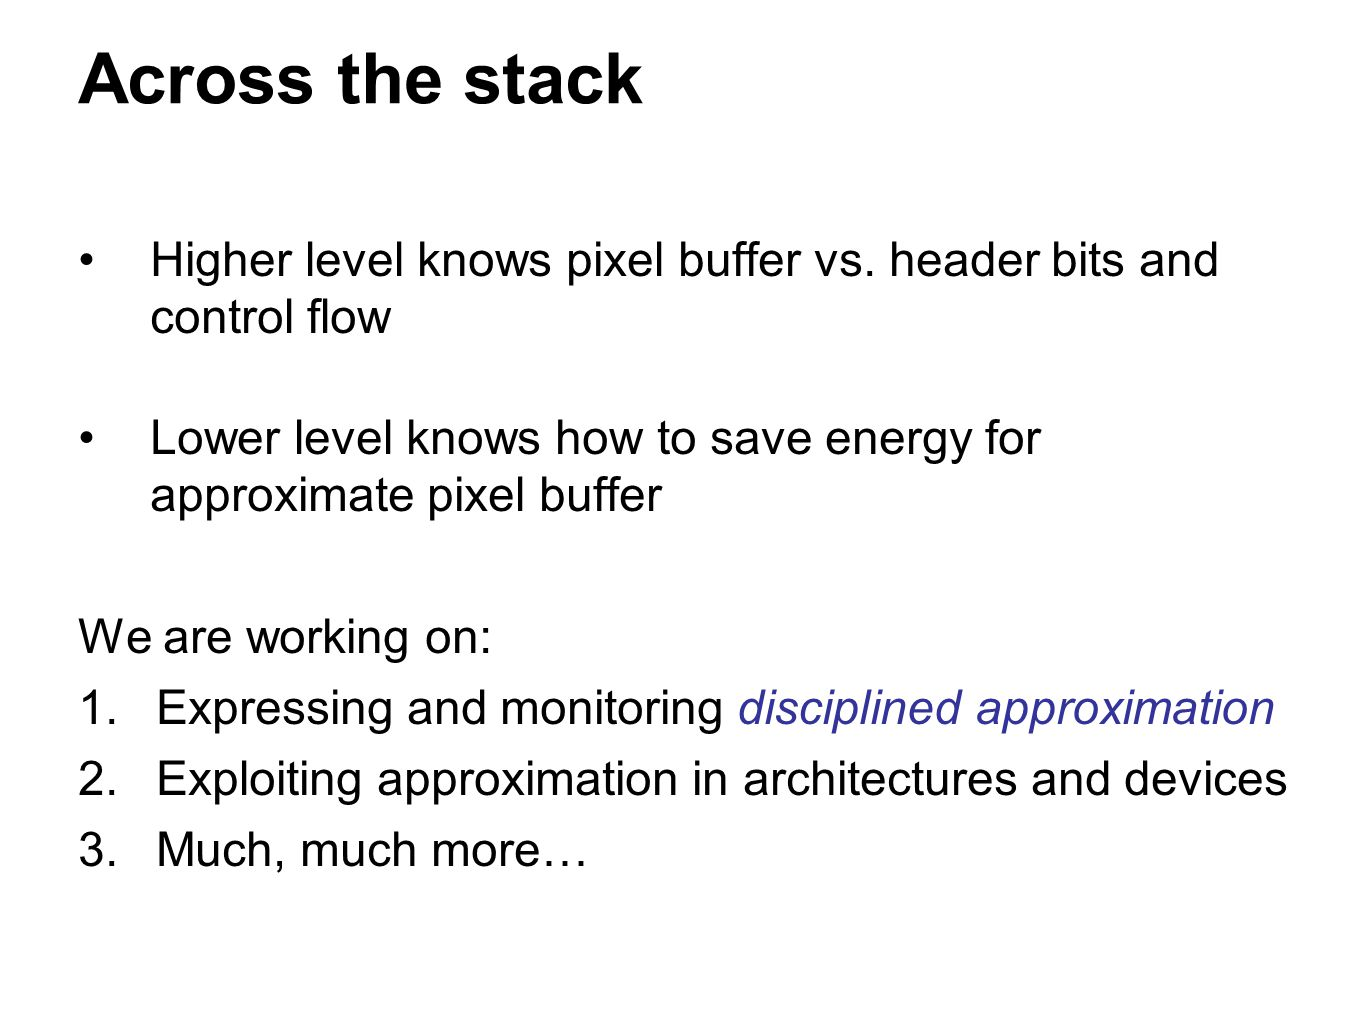 Across the stack Higher level knows pixel buffer vs. header bits and control flow.